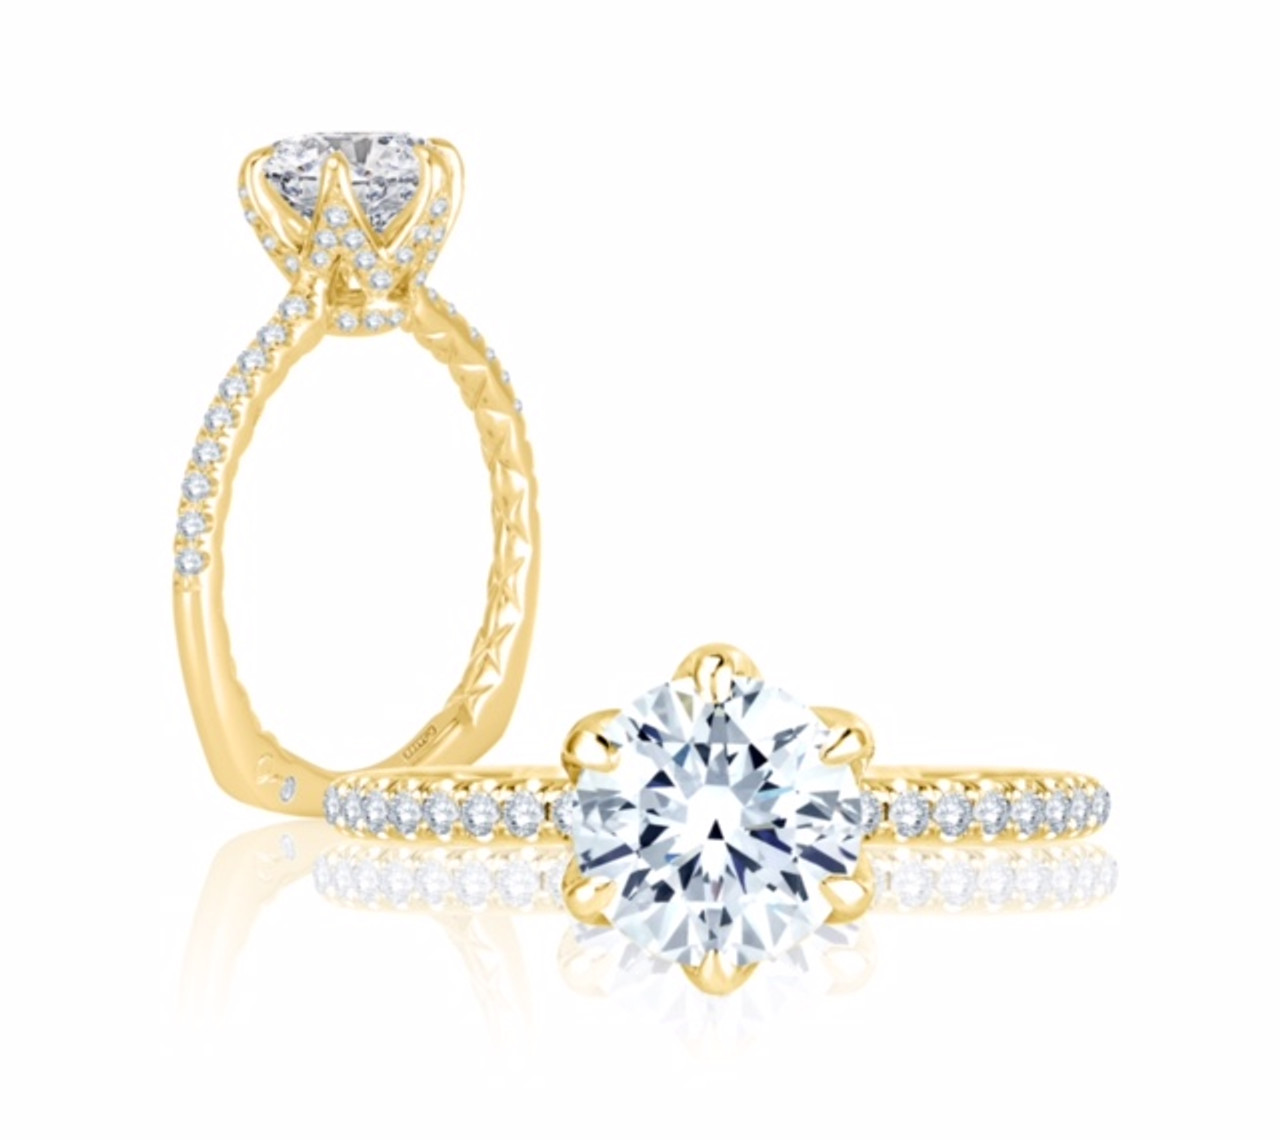 18k Yellow Gold Micro Pave Engagement Ring With Diamond Accents A Jaffe Engagement Rings Johannes Hunter Jewelers